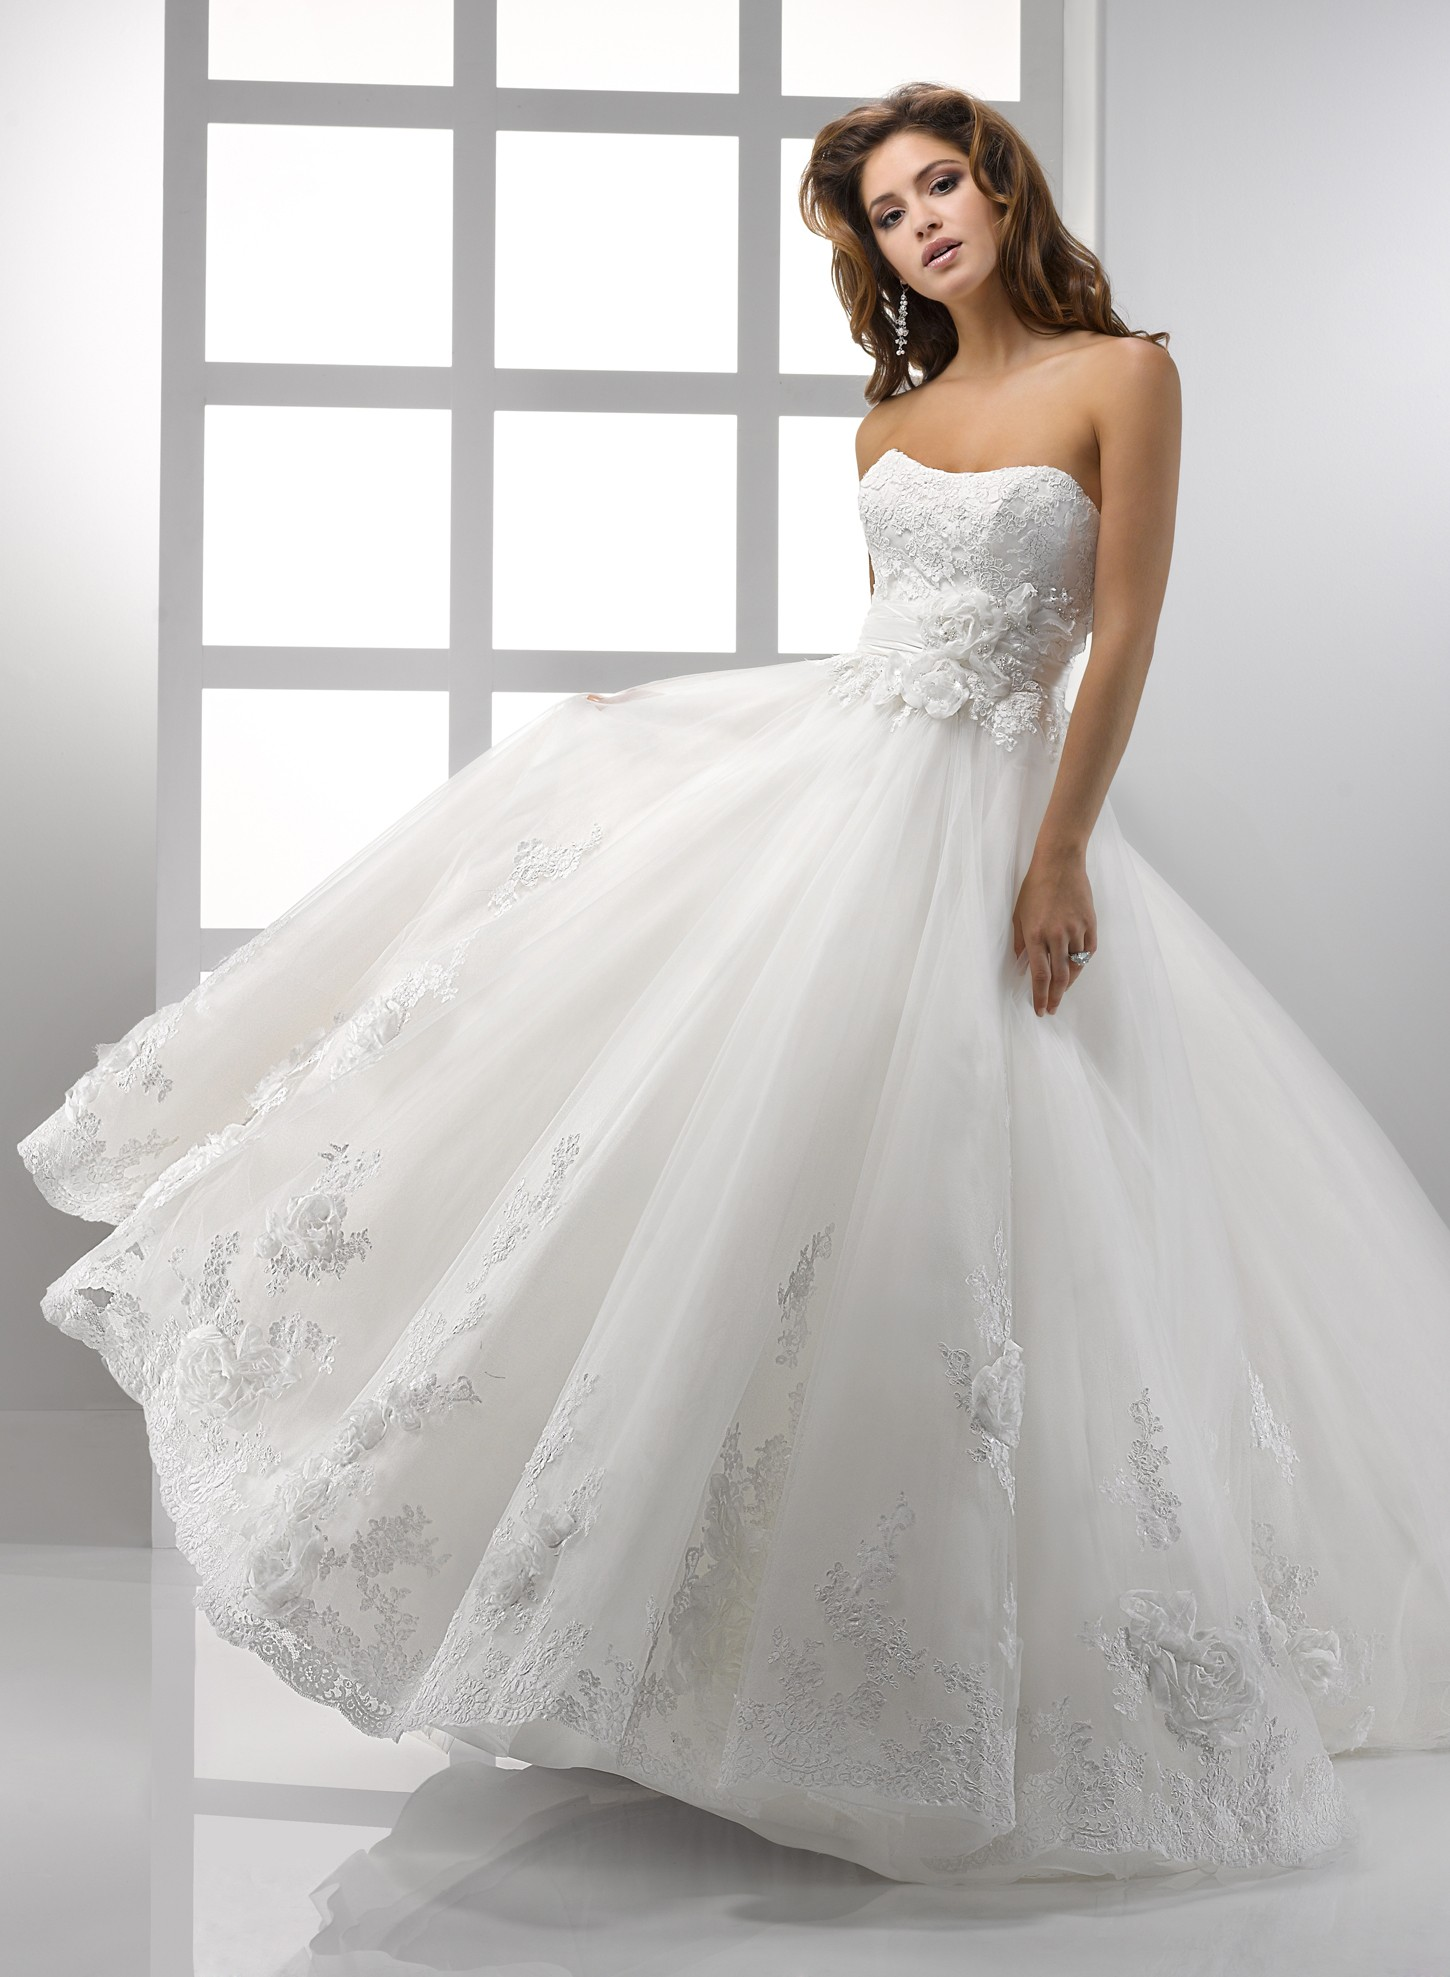 Lace Ball Gown Wedding Dressescherry Marry Cherry Marry